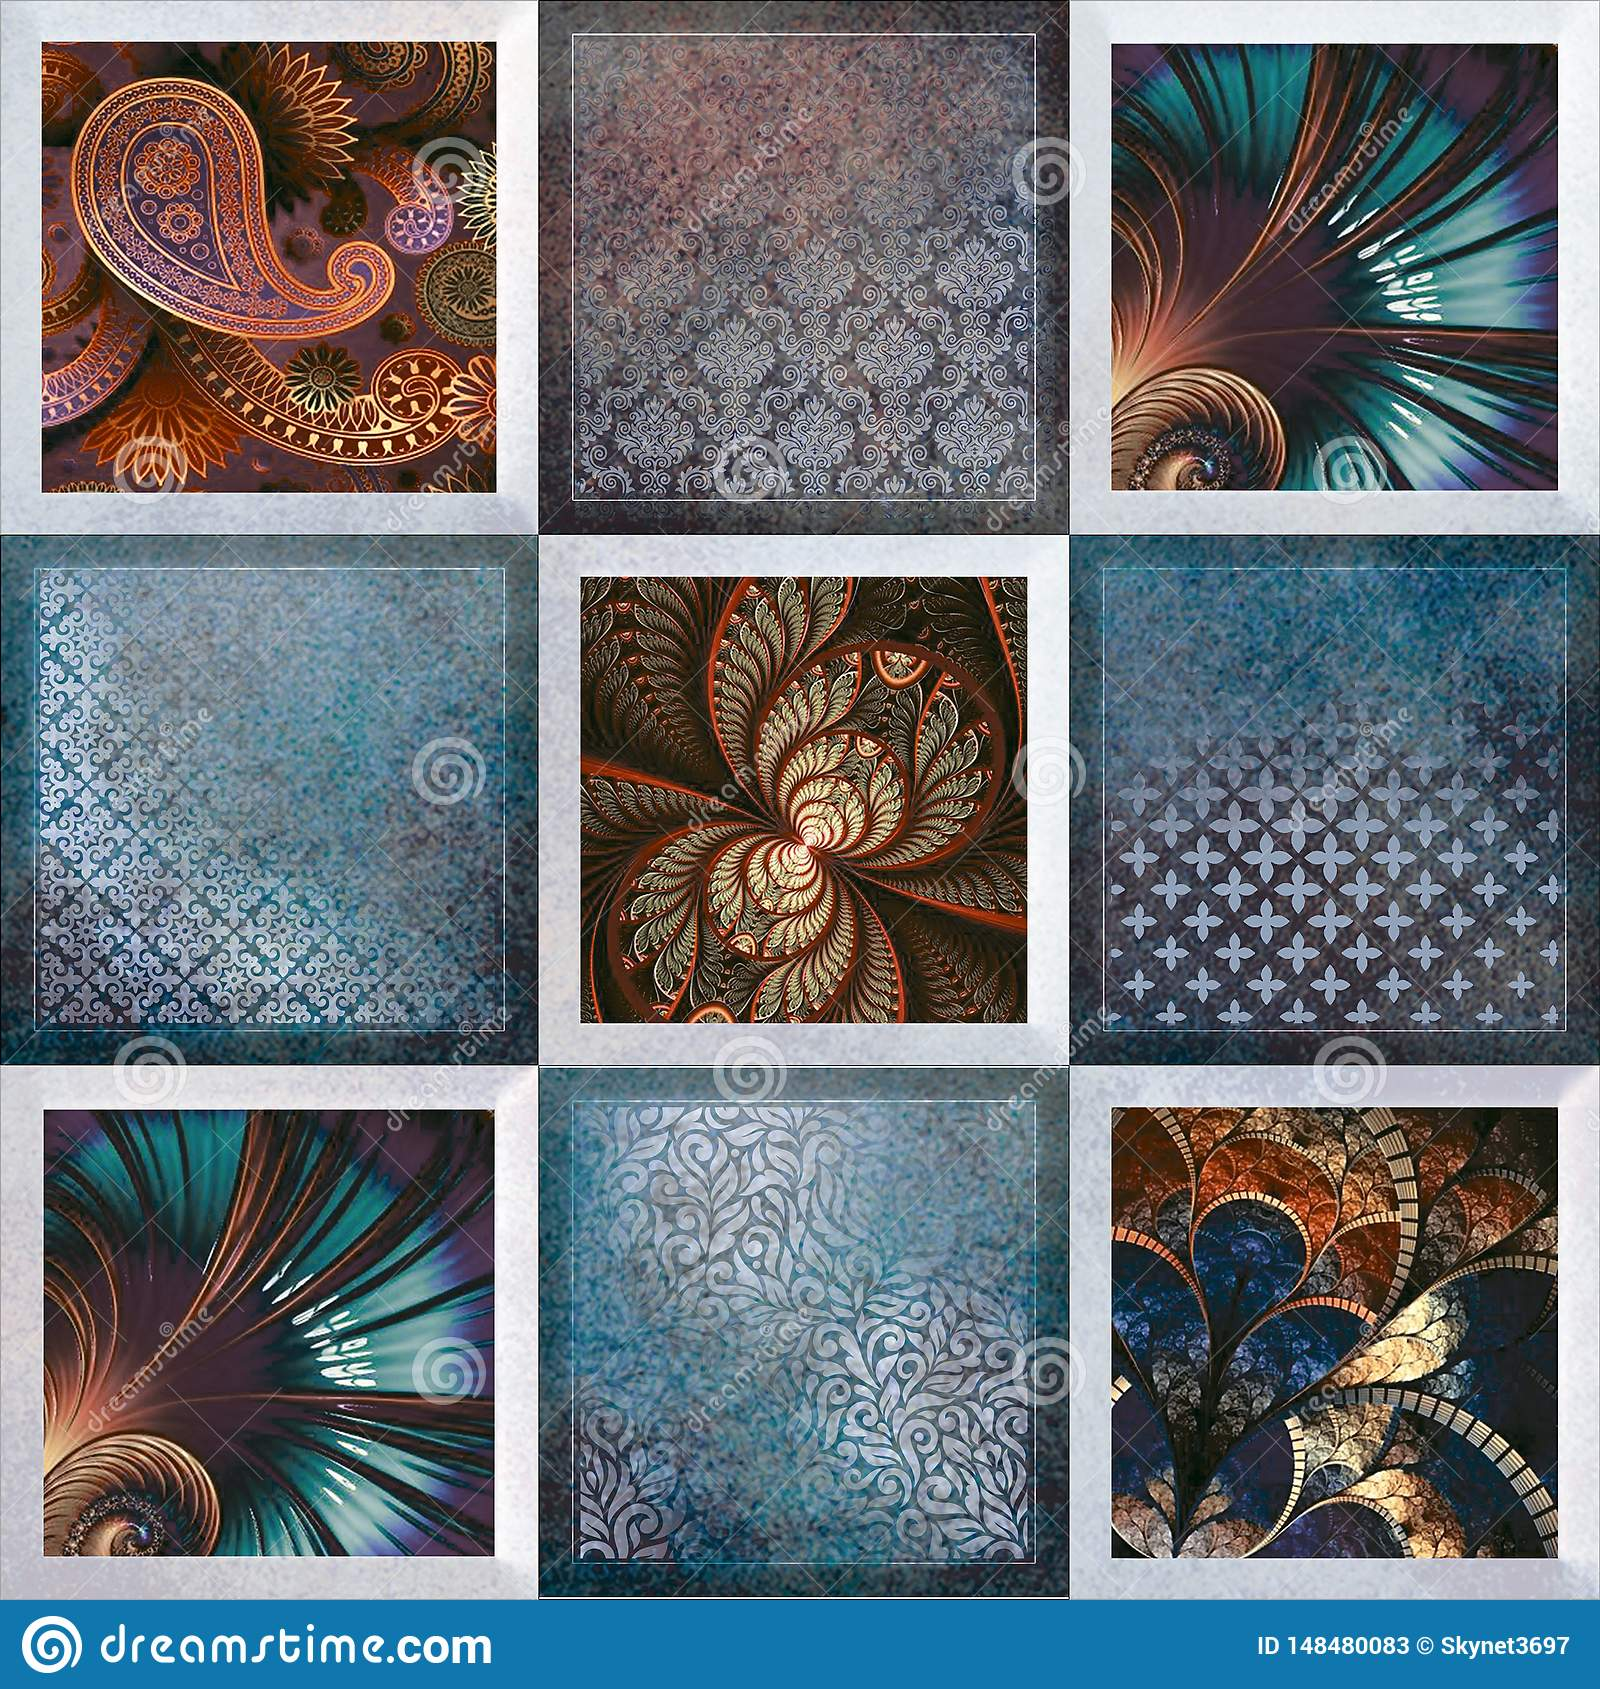 Multicolor Wall Art Decor Digital Wall Tiles Design For Home